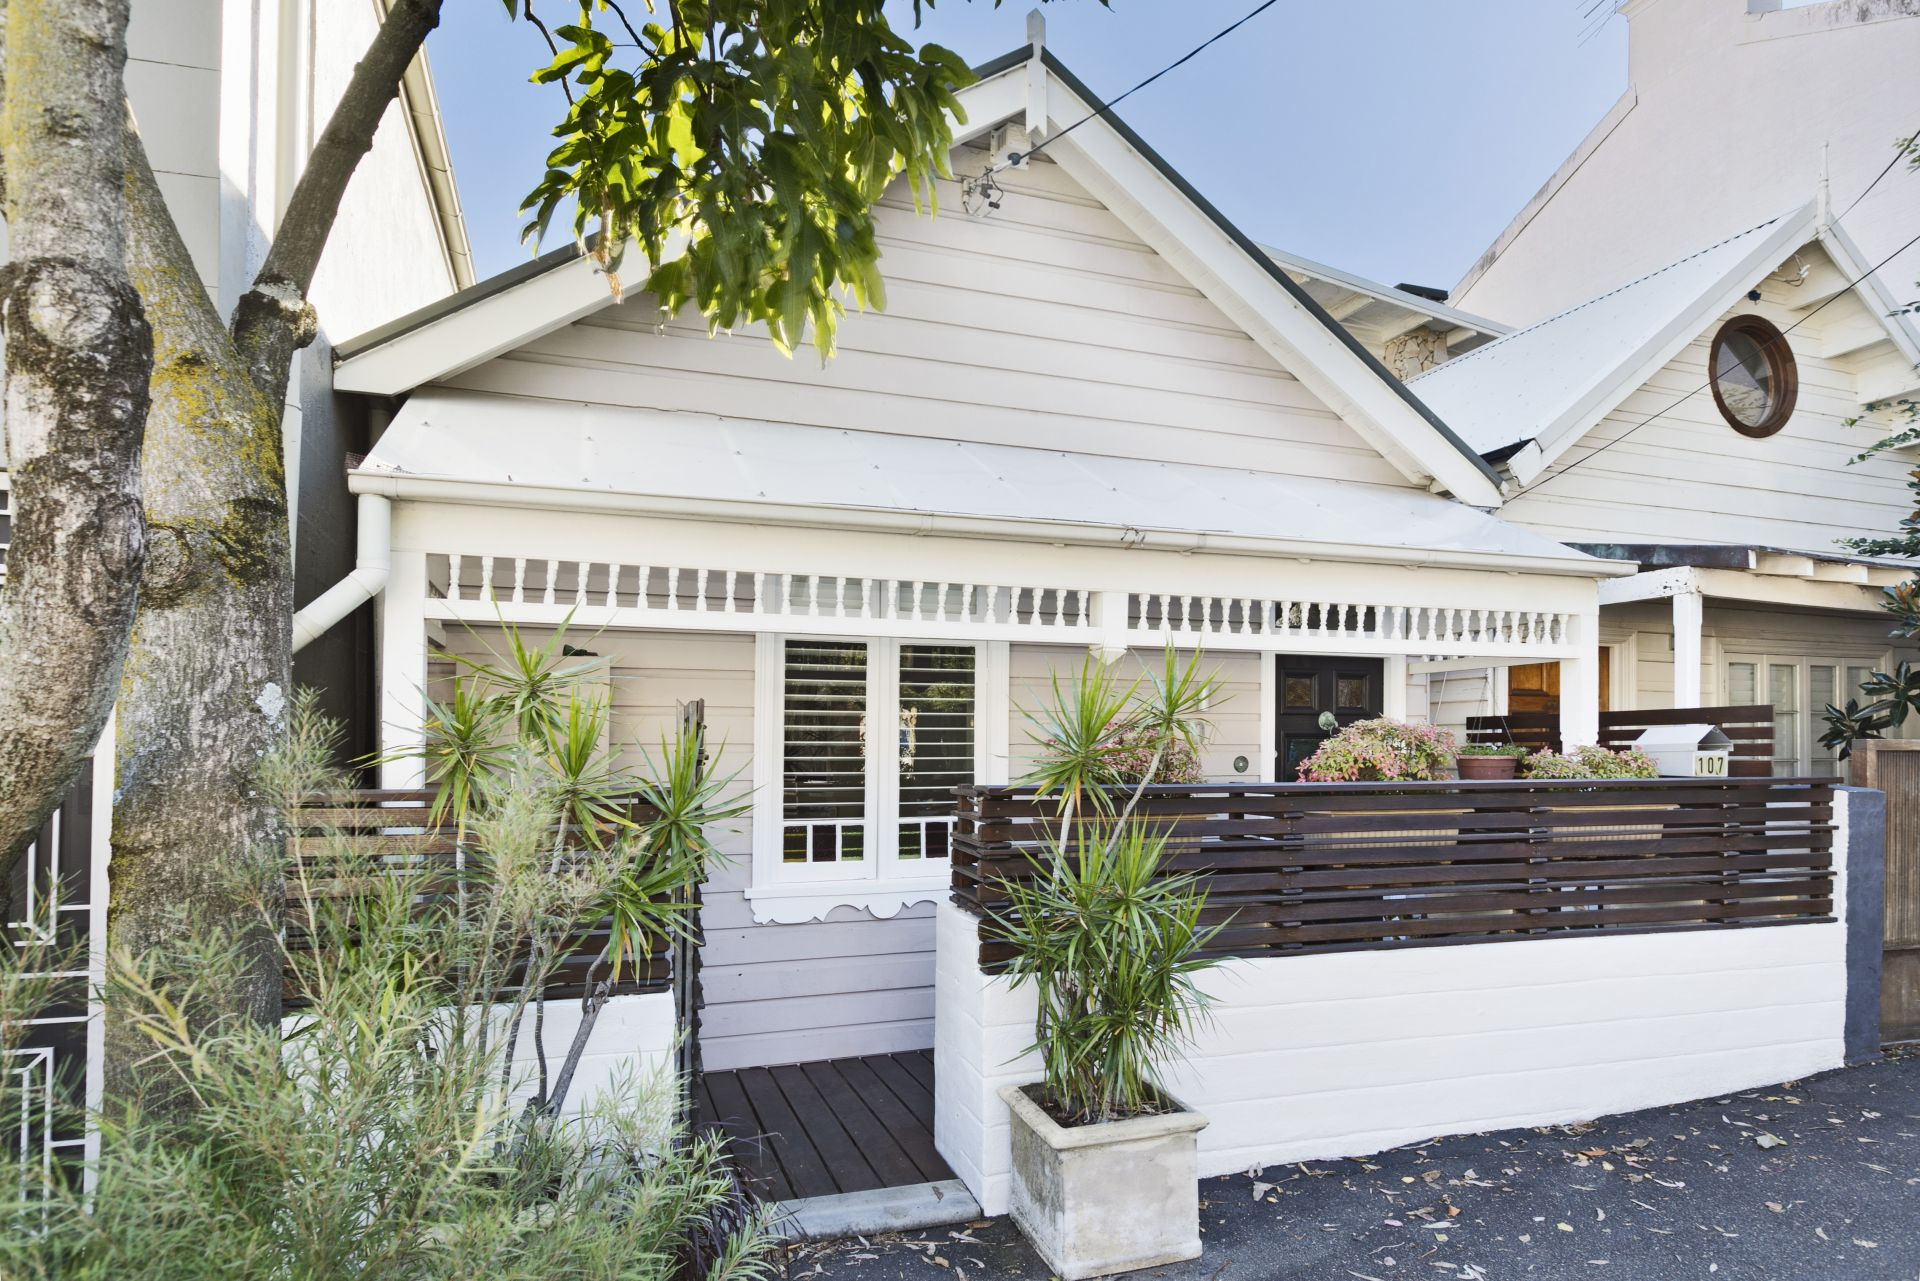 d345b5a4 107 Mullens Street Balmain NSW 2041 - House for Sale #4877324 ...